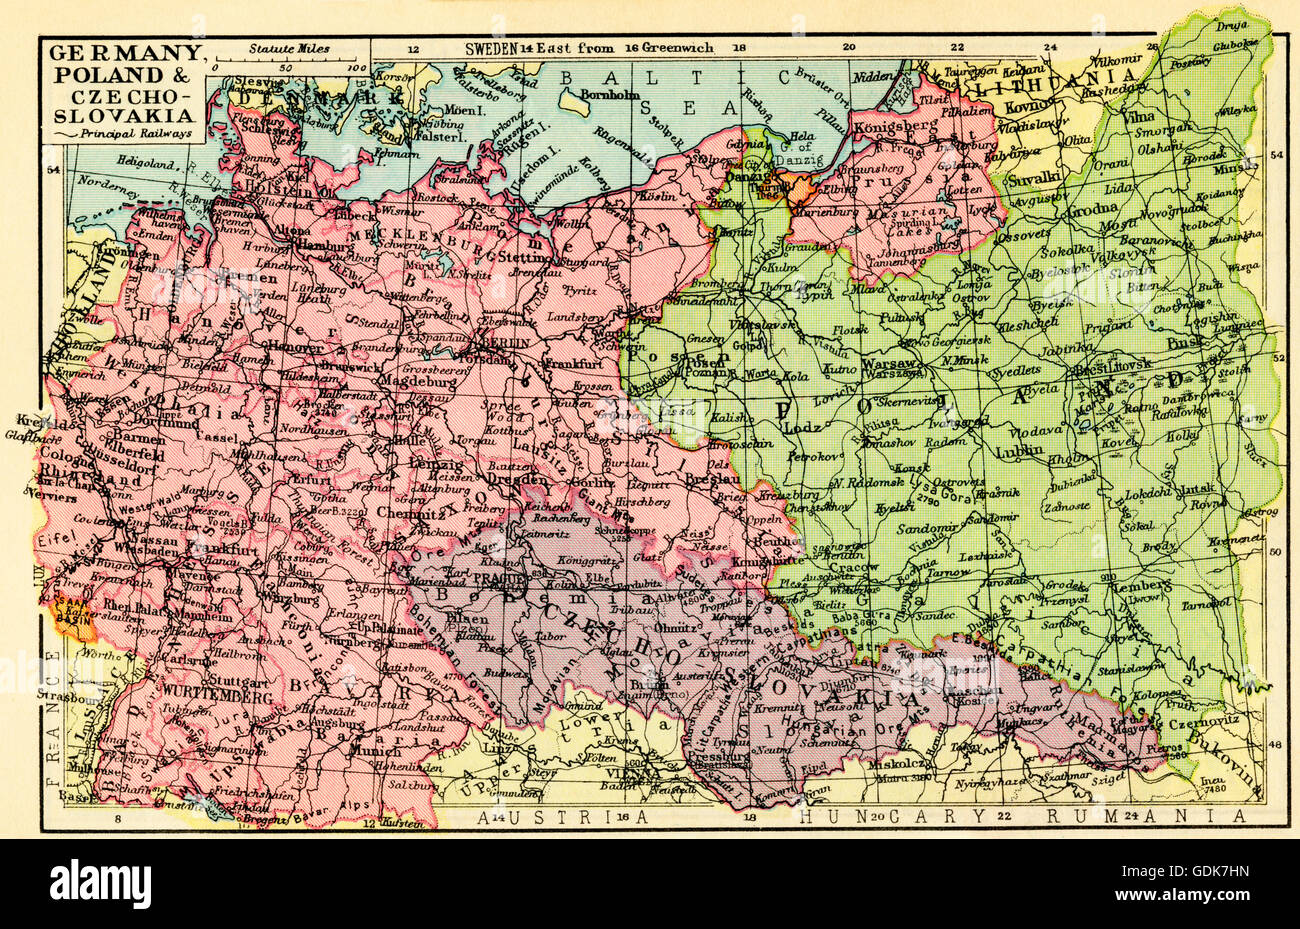 Poland 1930 Map A 1930's map of Germany, Poland and Czechoslovakia Stock Photo